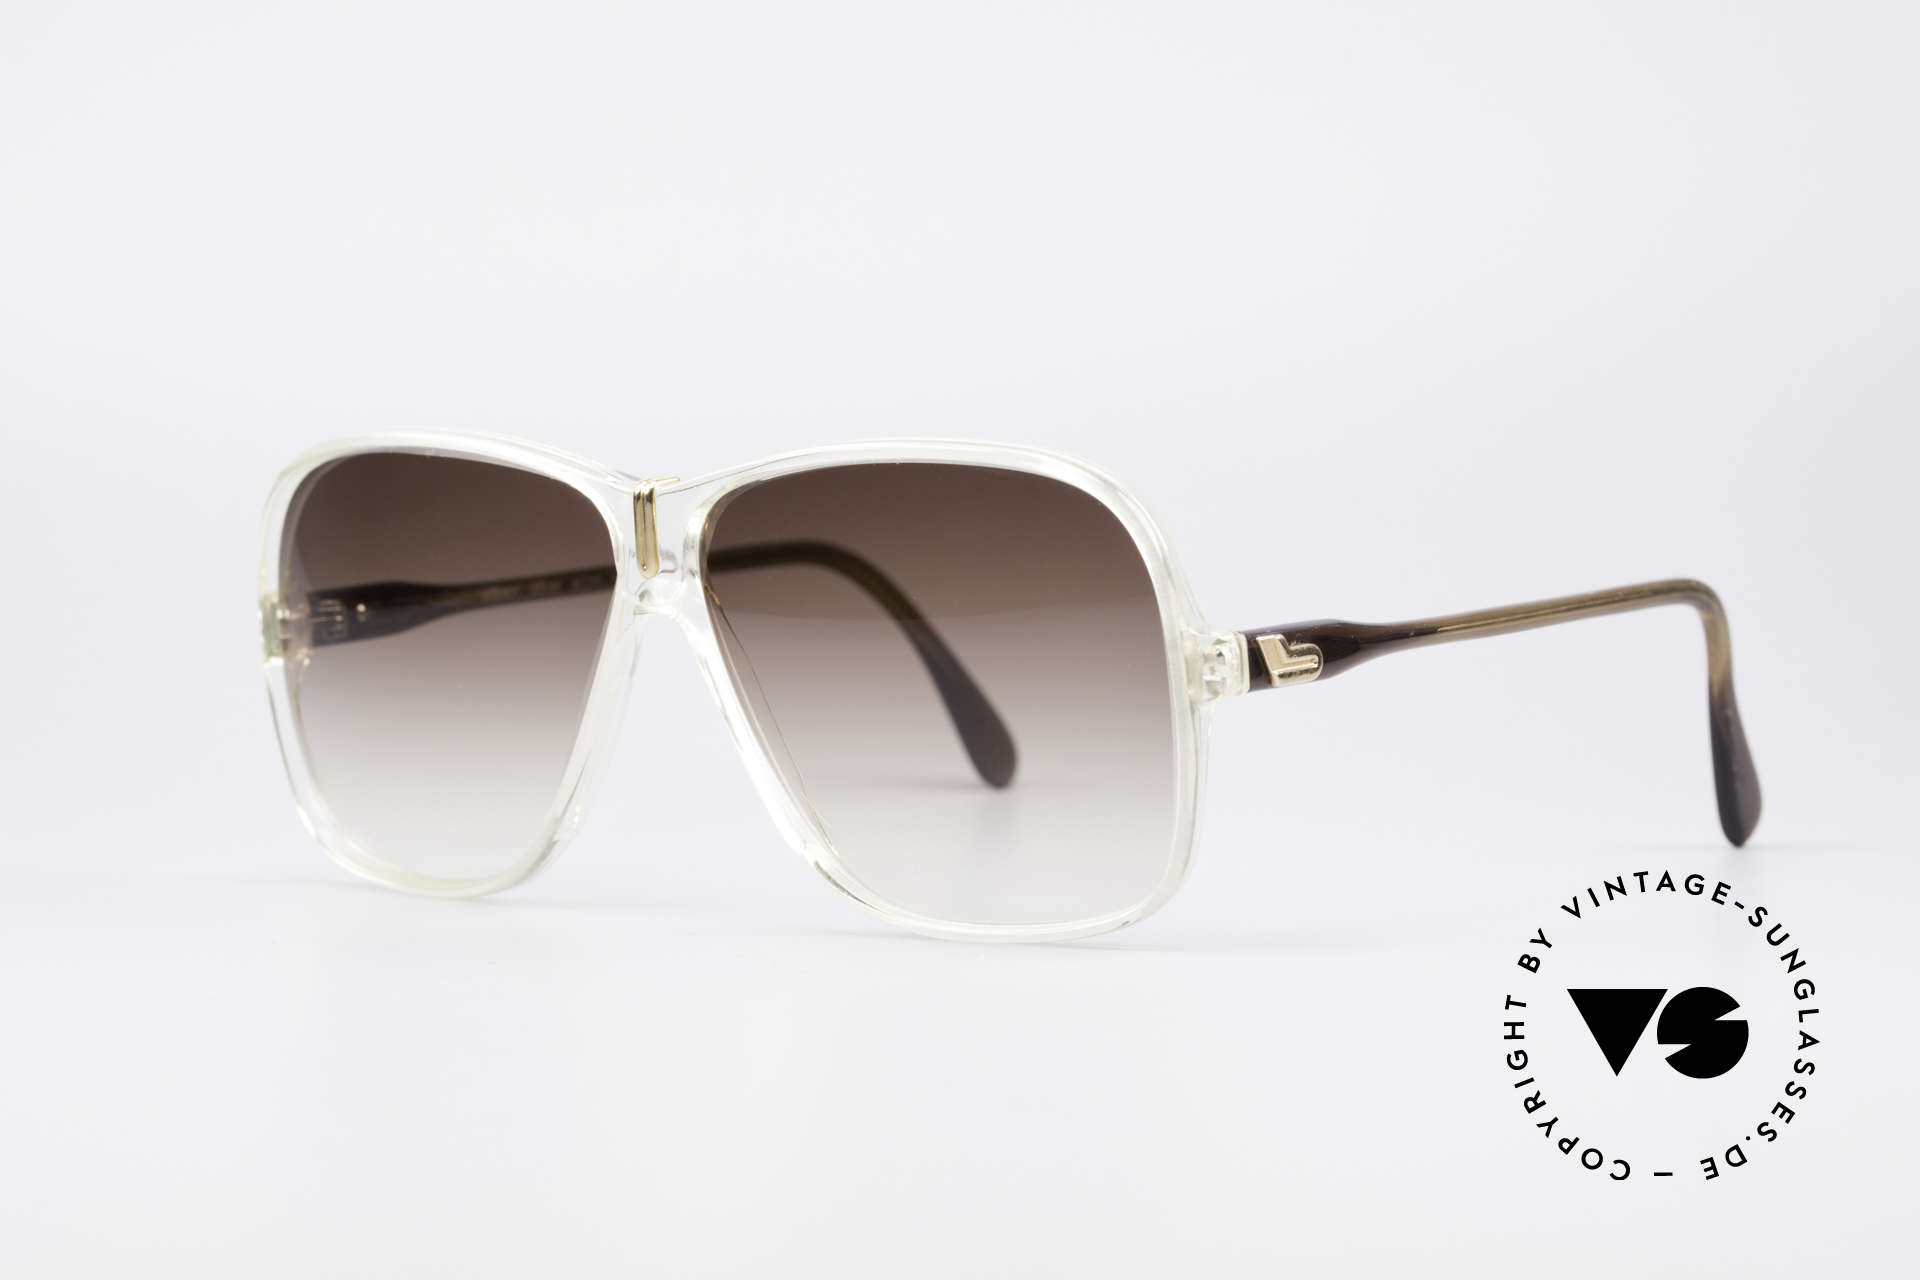 Cazal 621 West Germany Sunglasses, gents designer sunglasses 'made in W.Germany', Made for Men